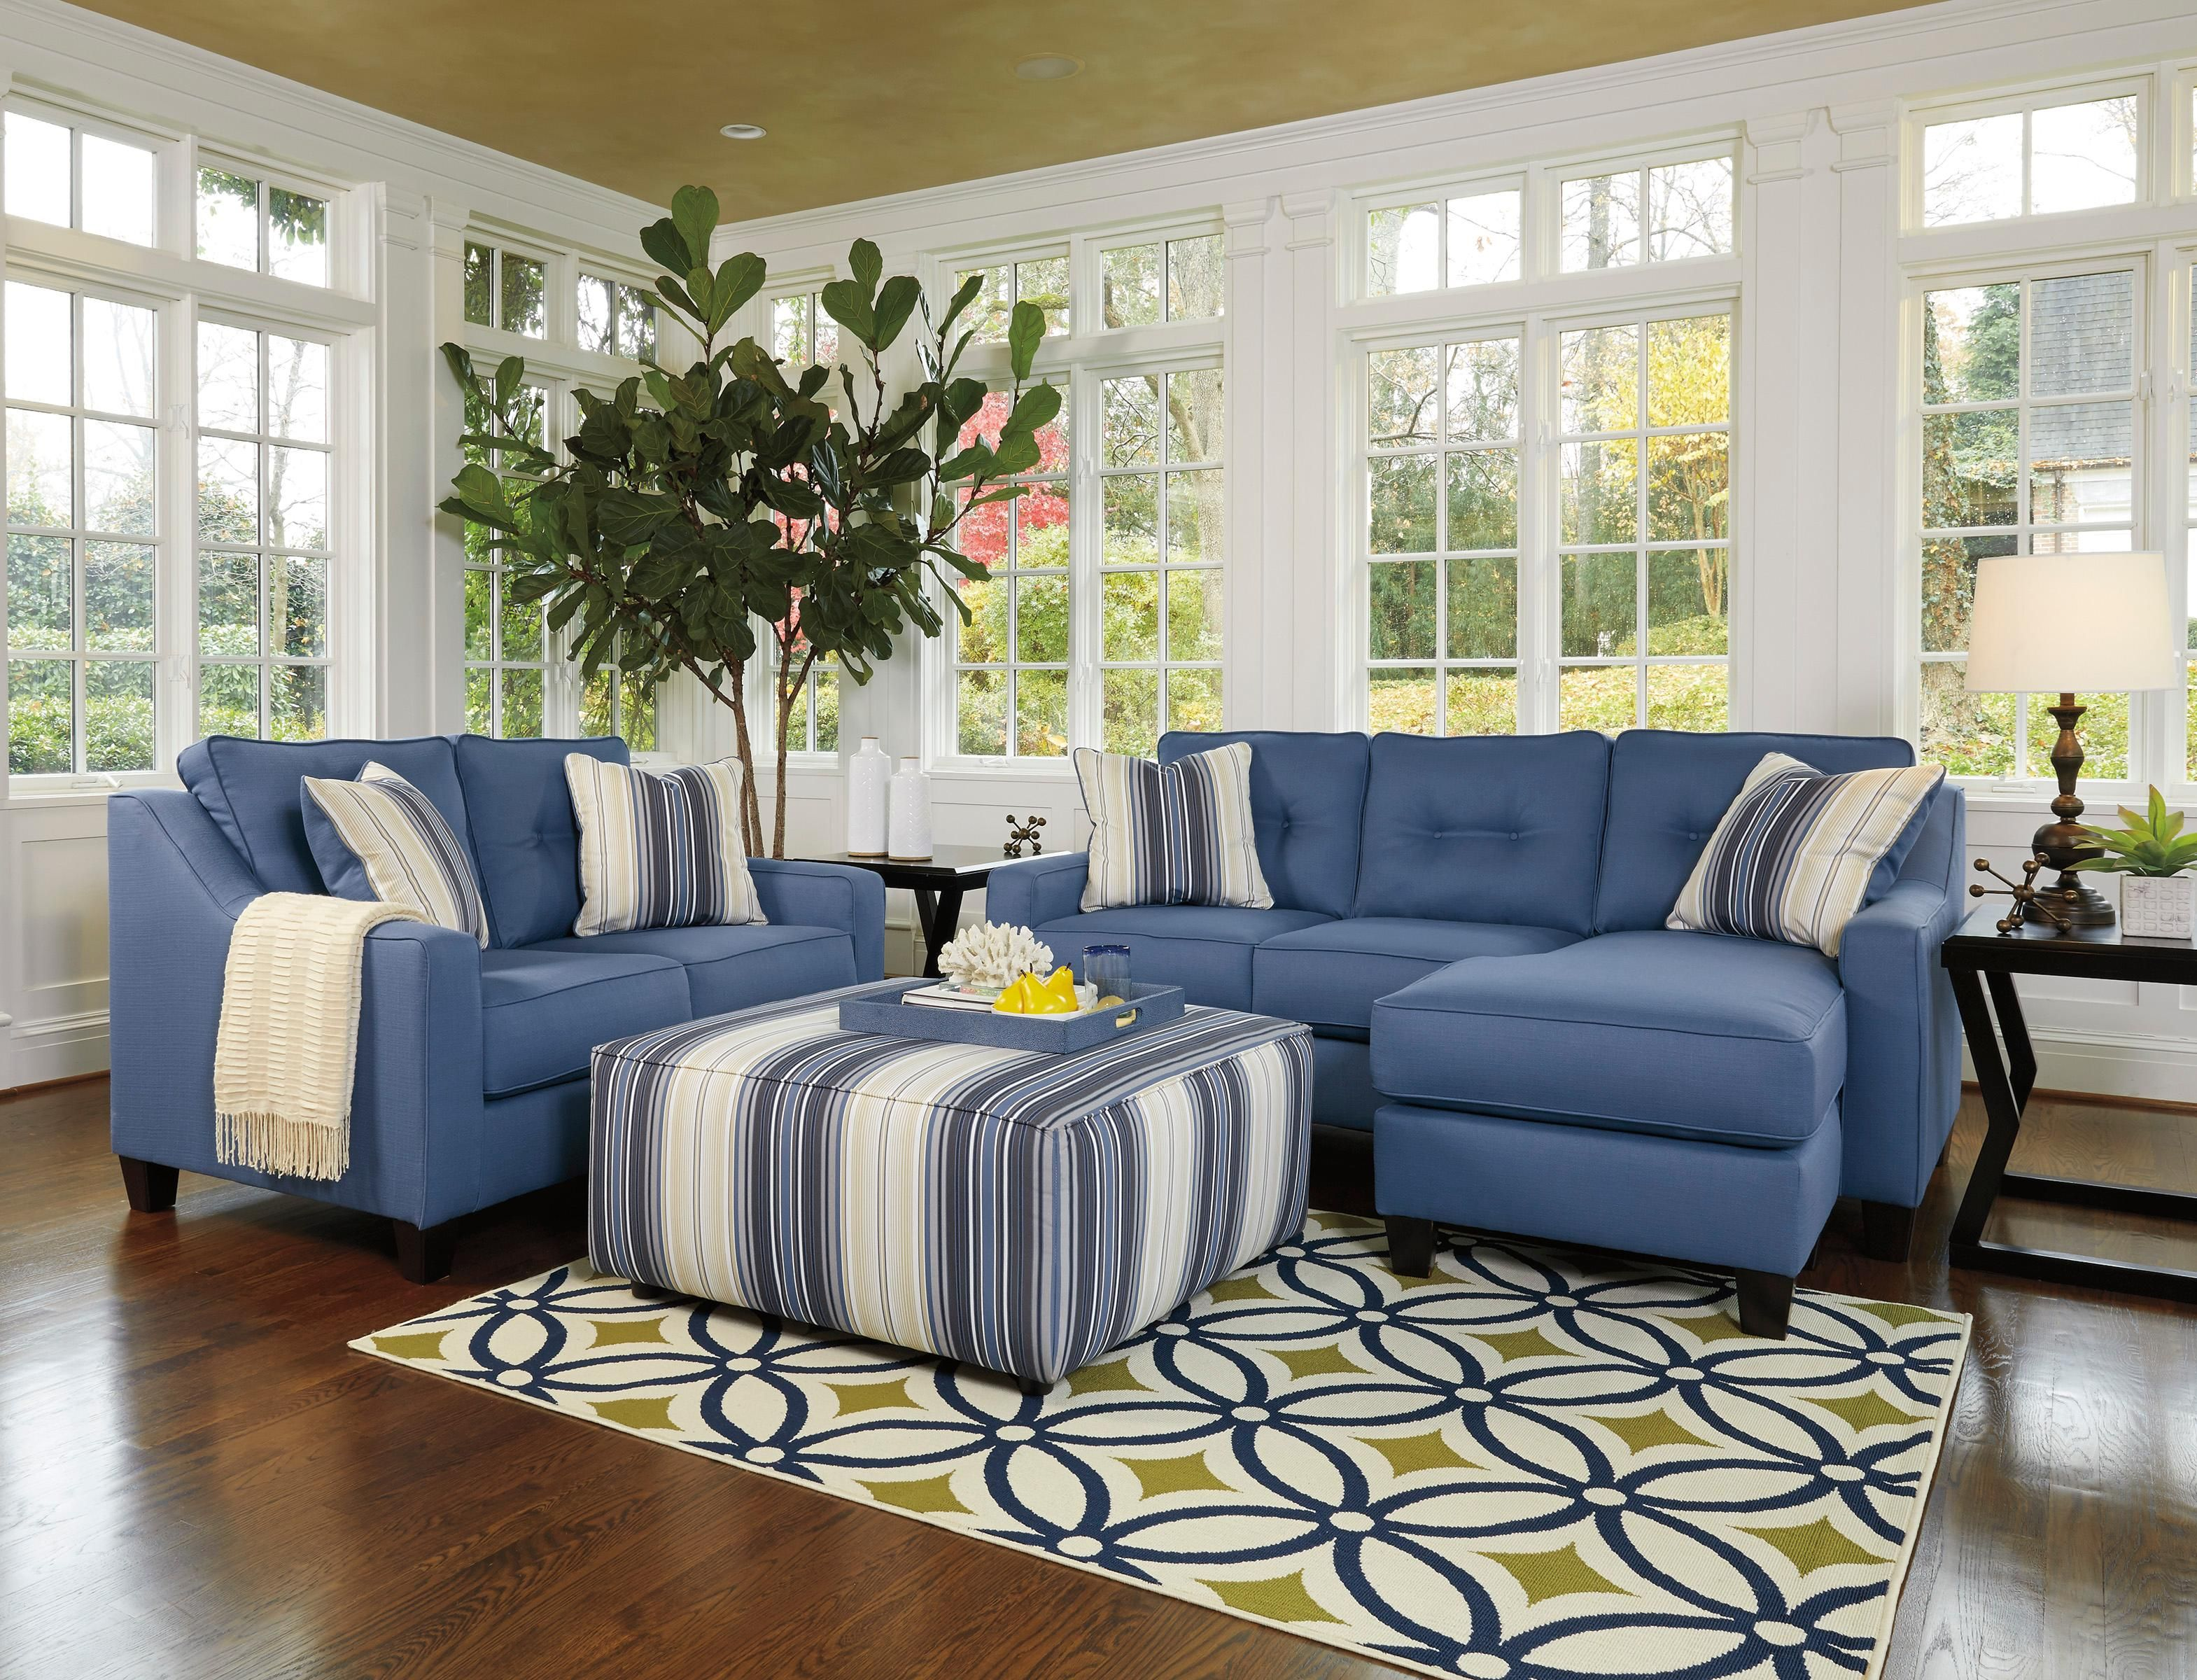 21+ Ashley furniture living room sets blue ideas in 2021